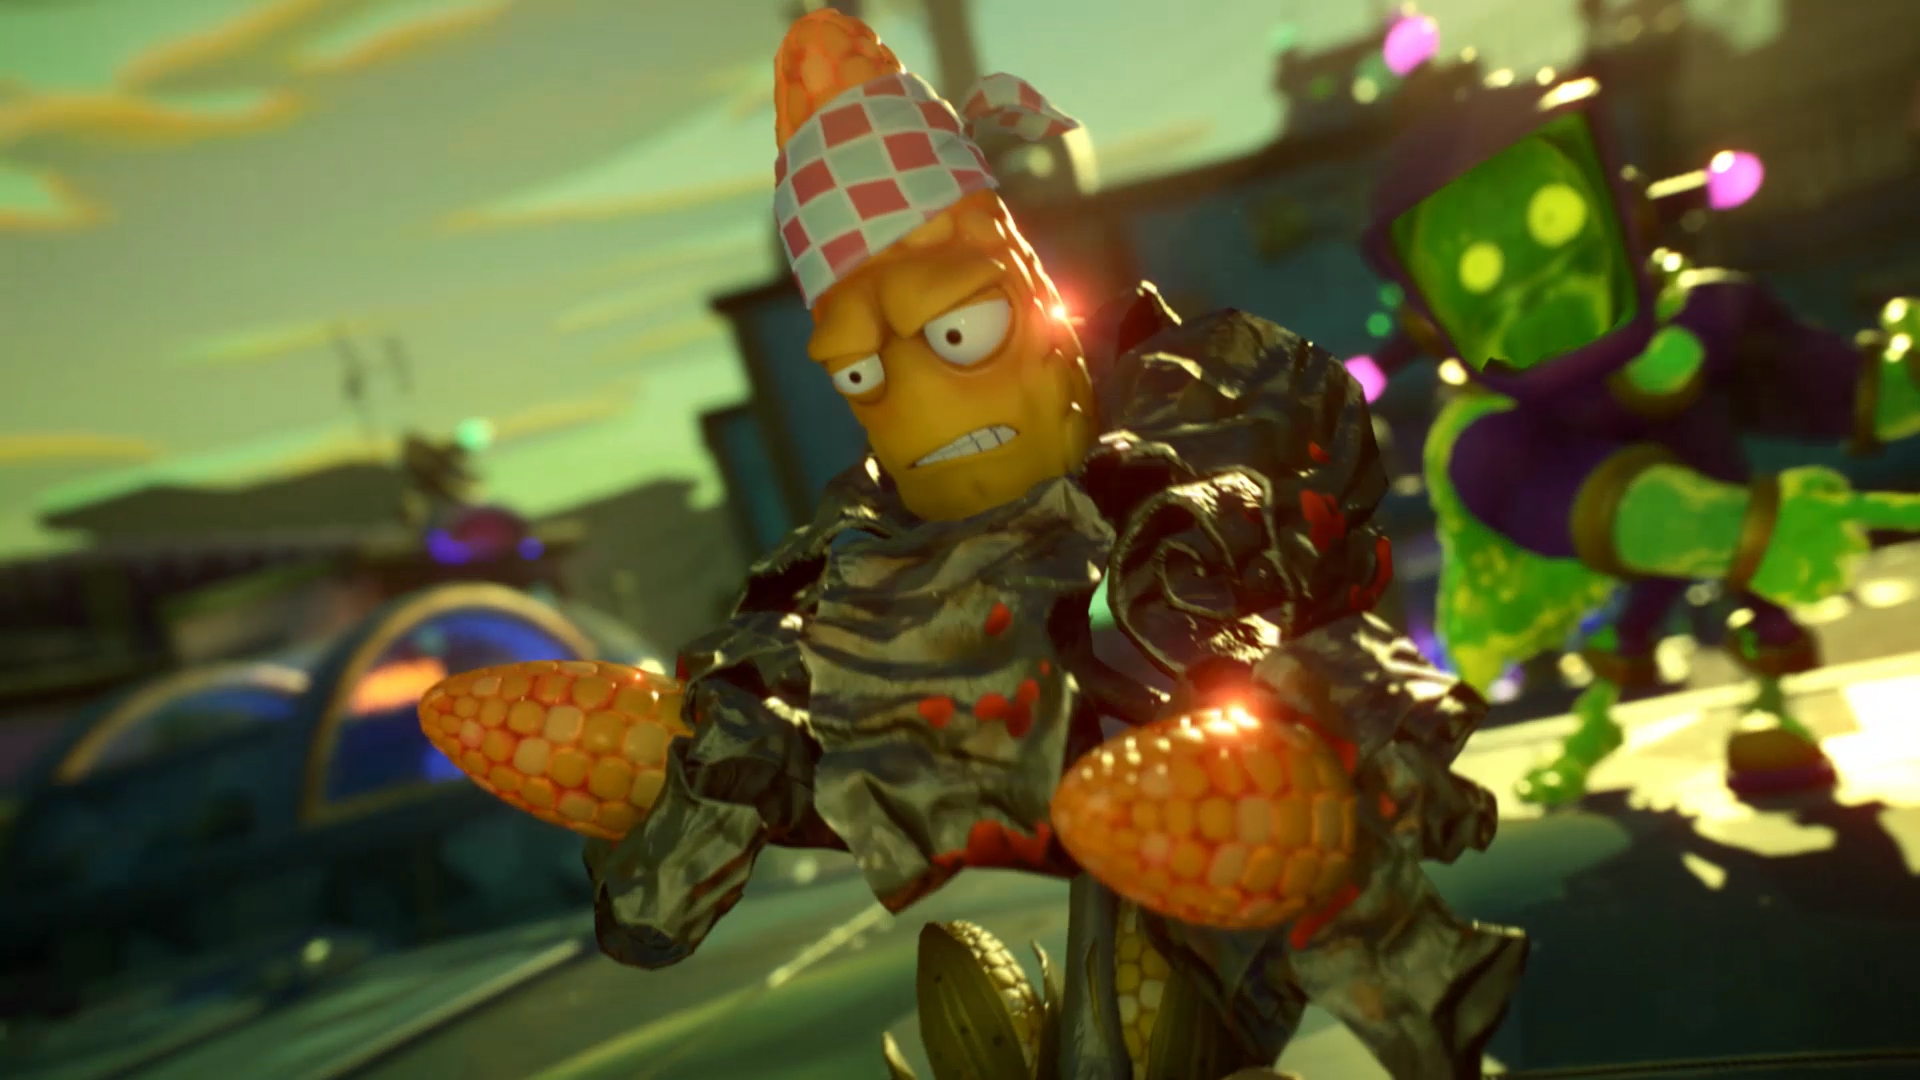 Top 3 Plants vs. Zombies Garden Warfare 2 Videos of the Week